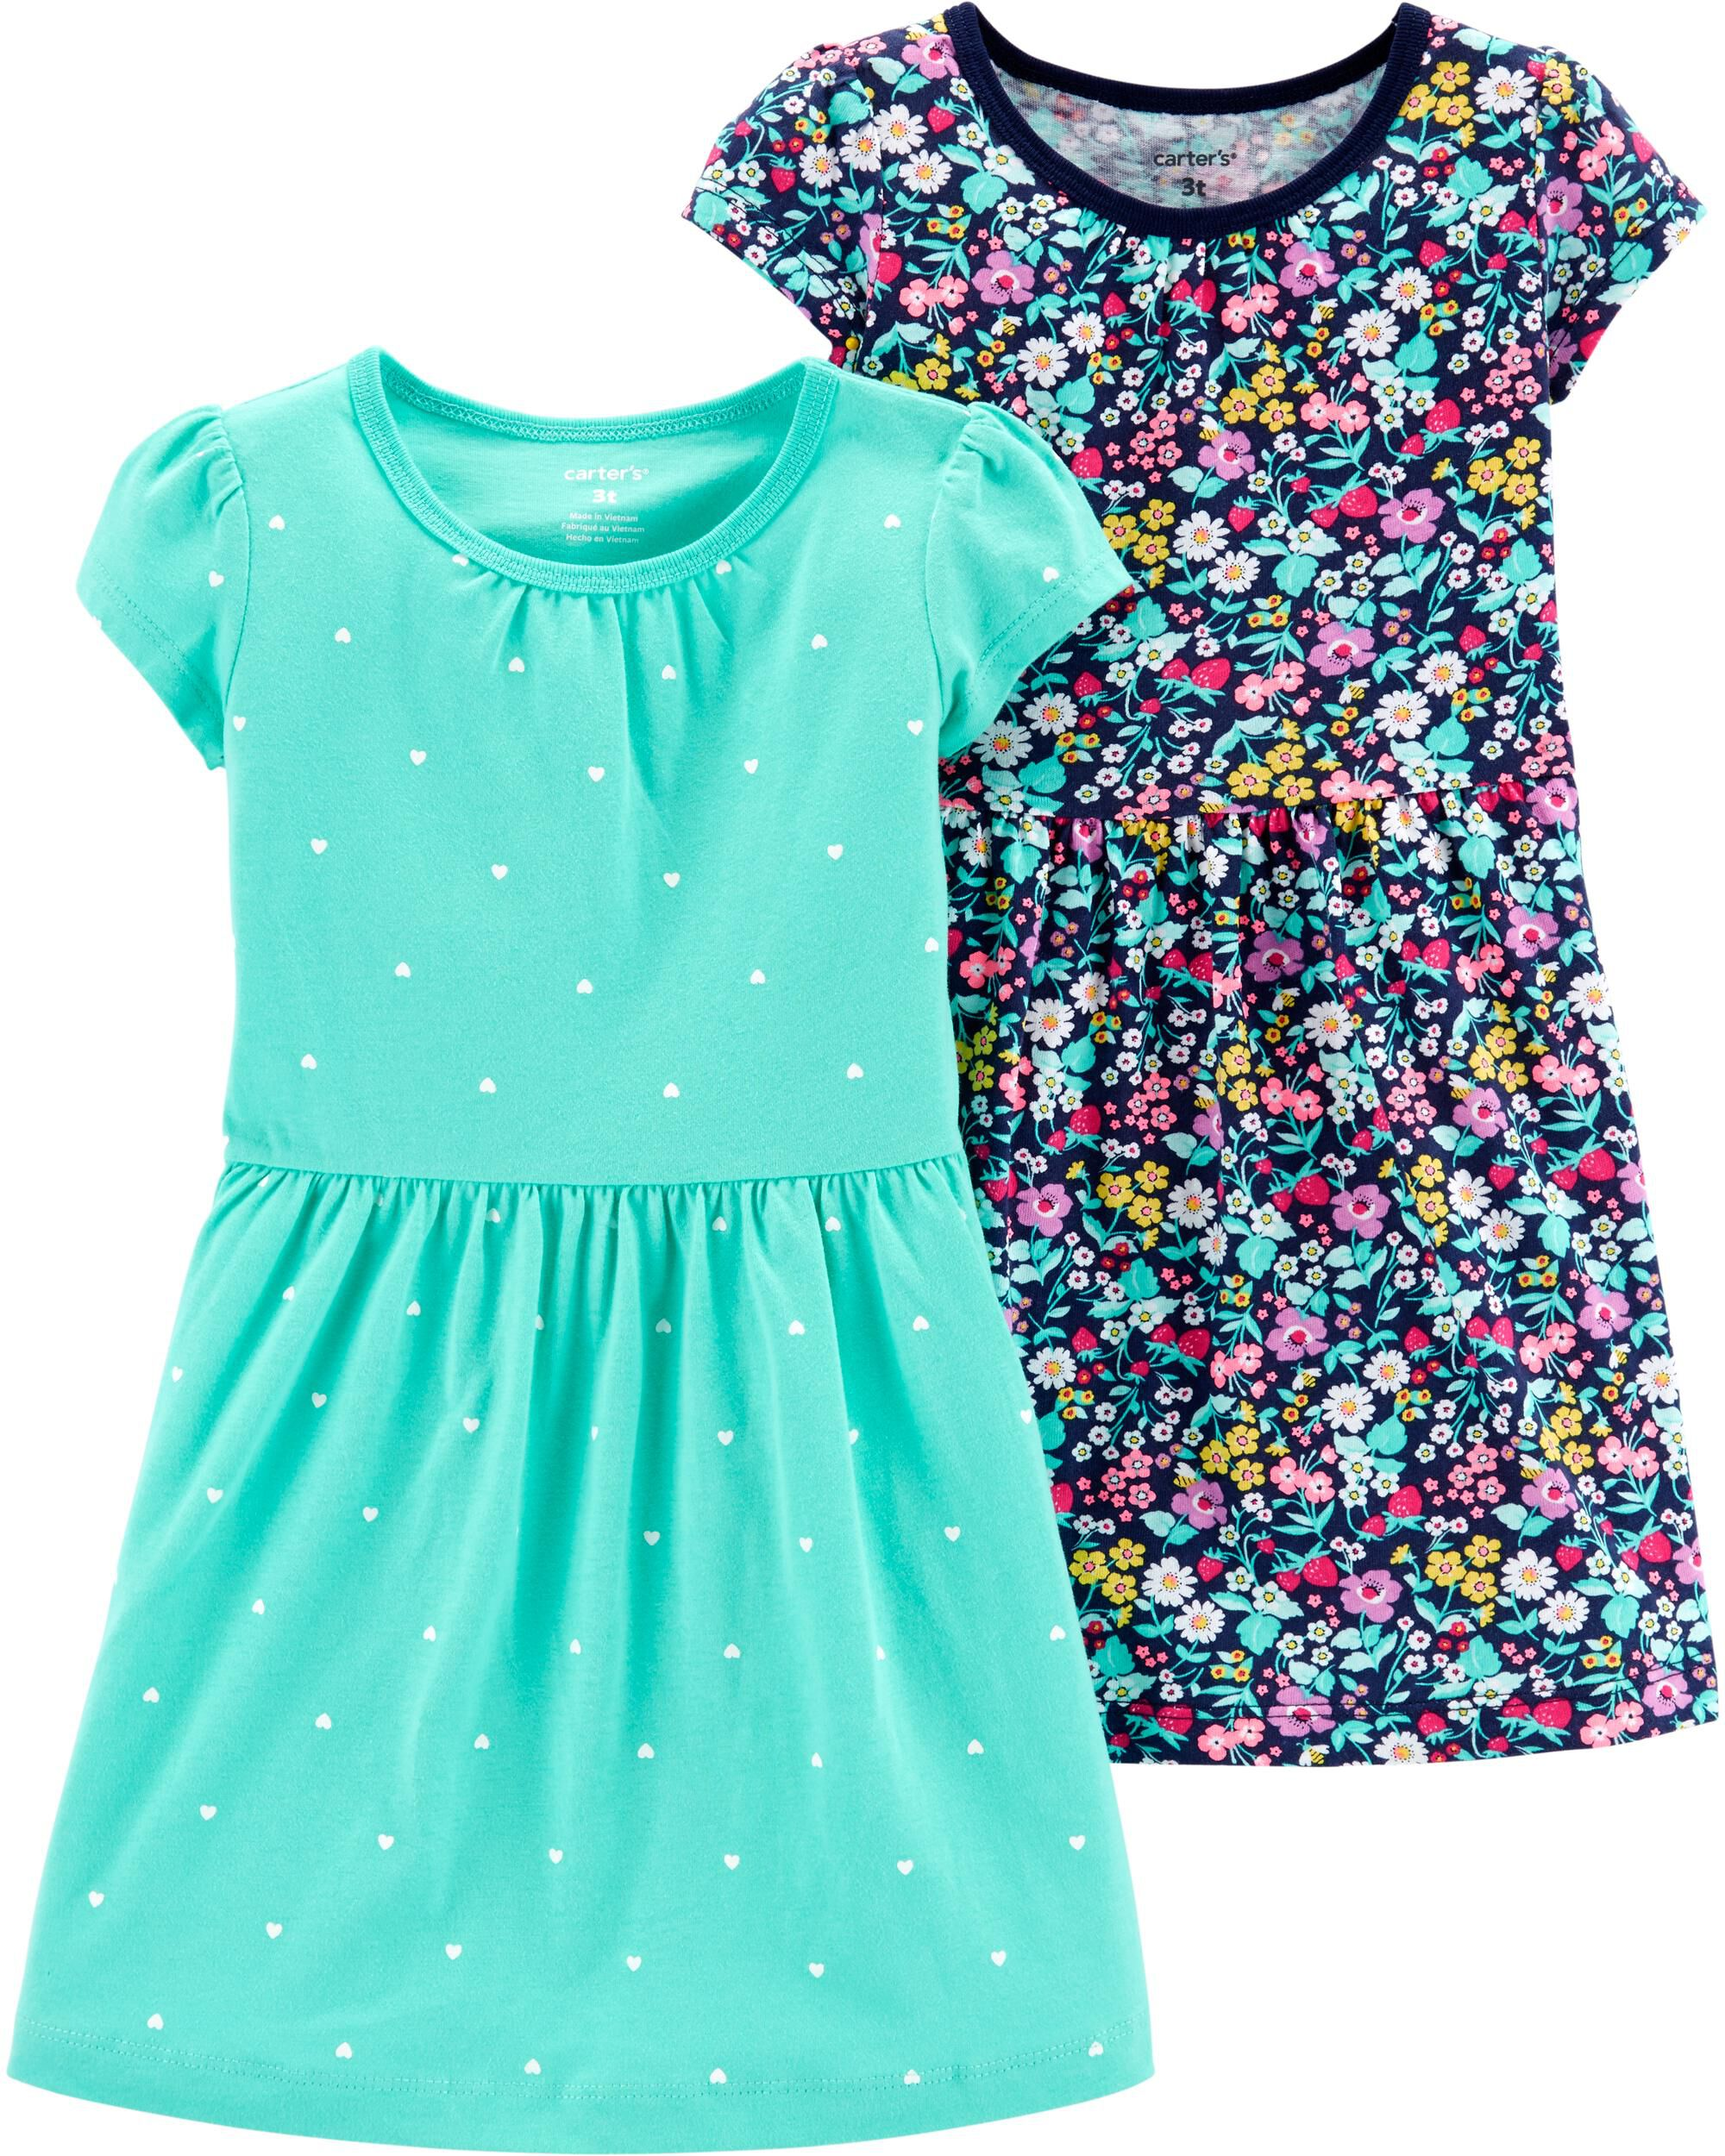 Clothing, Shoes & Accessories New Baby Girl 2 Piece Outfit Carters Size 9 Months Floral Green Spring Summer Girls' Clothing (newborn-5t)